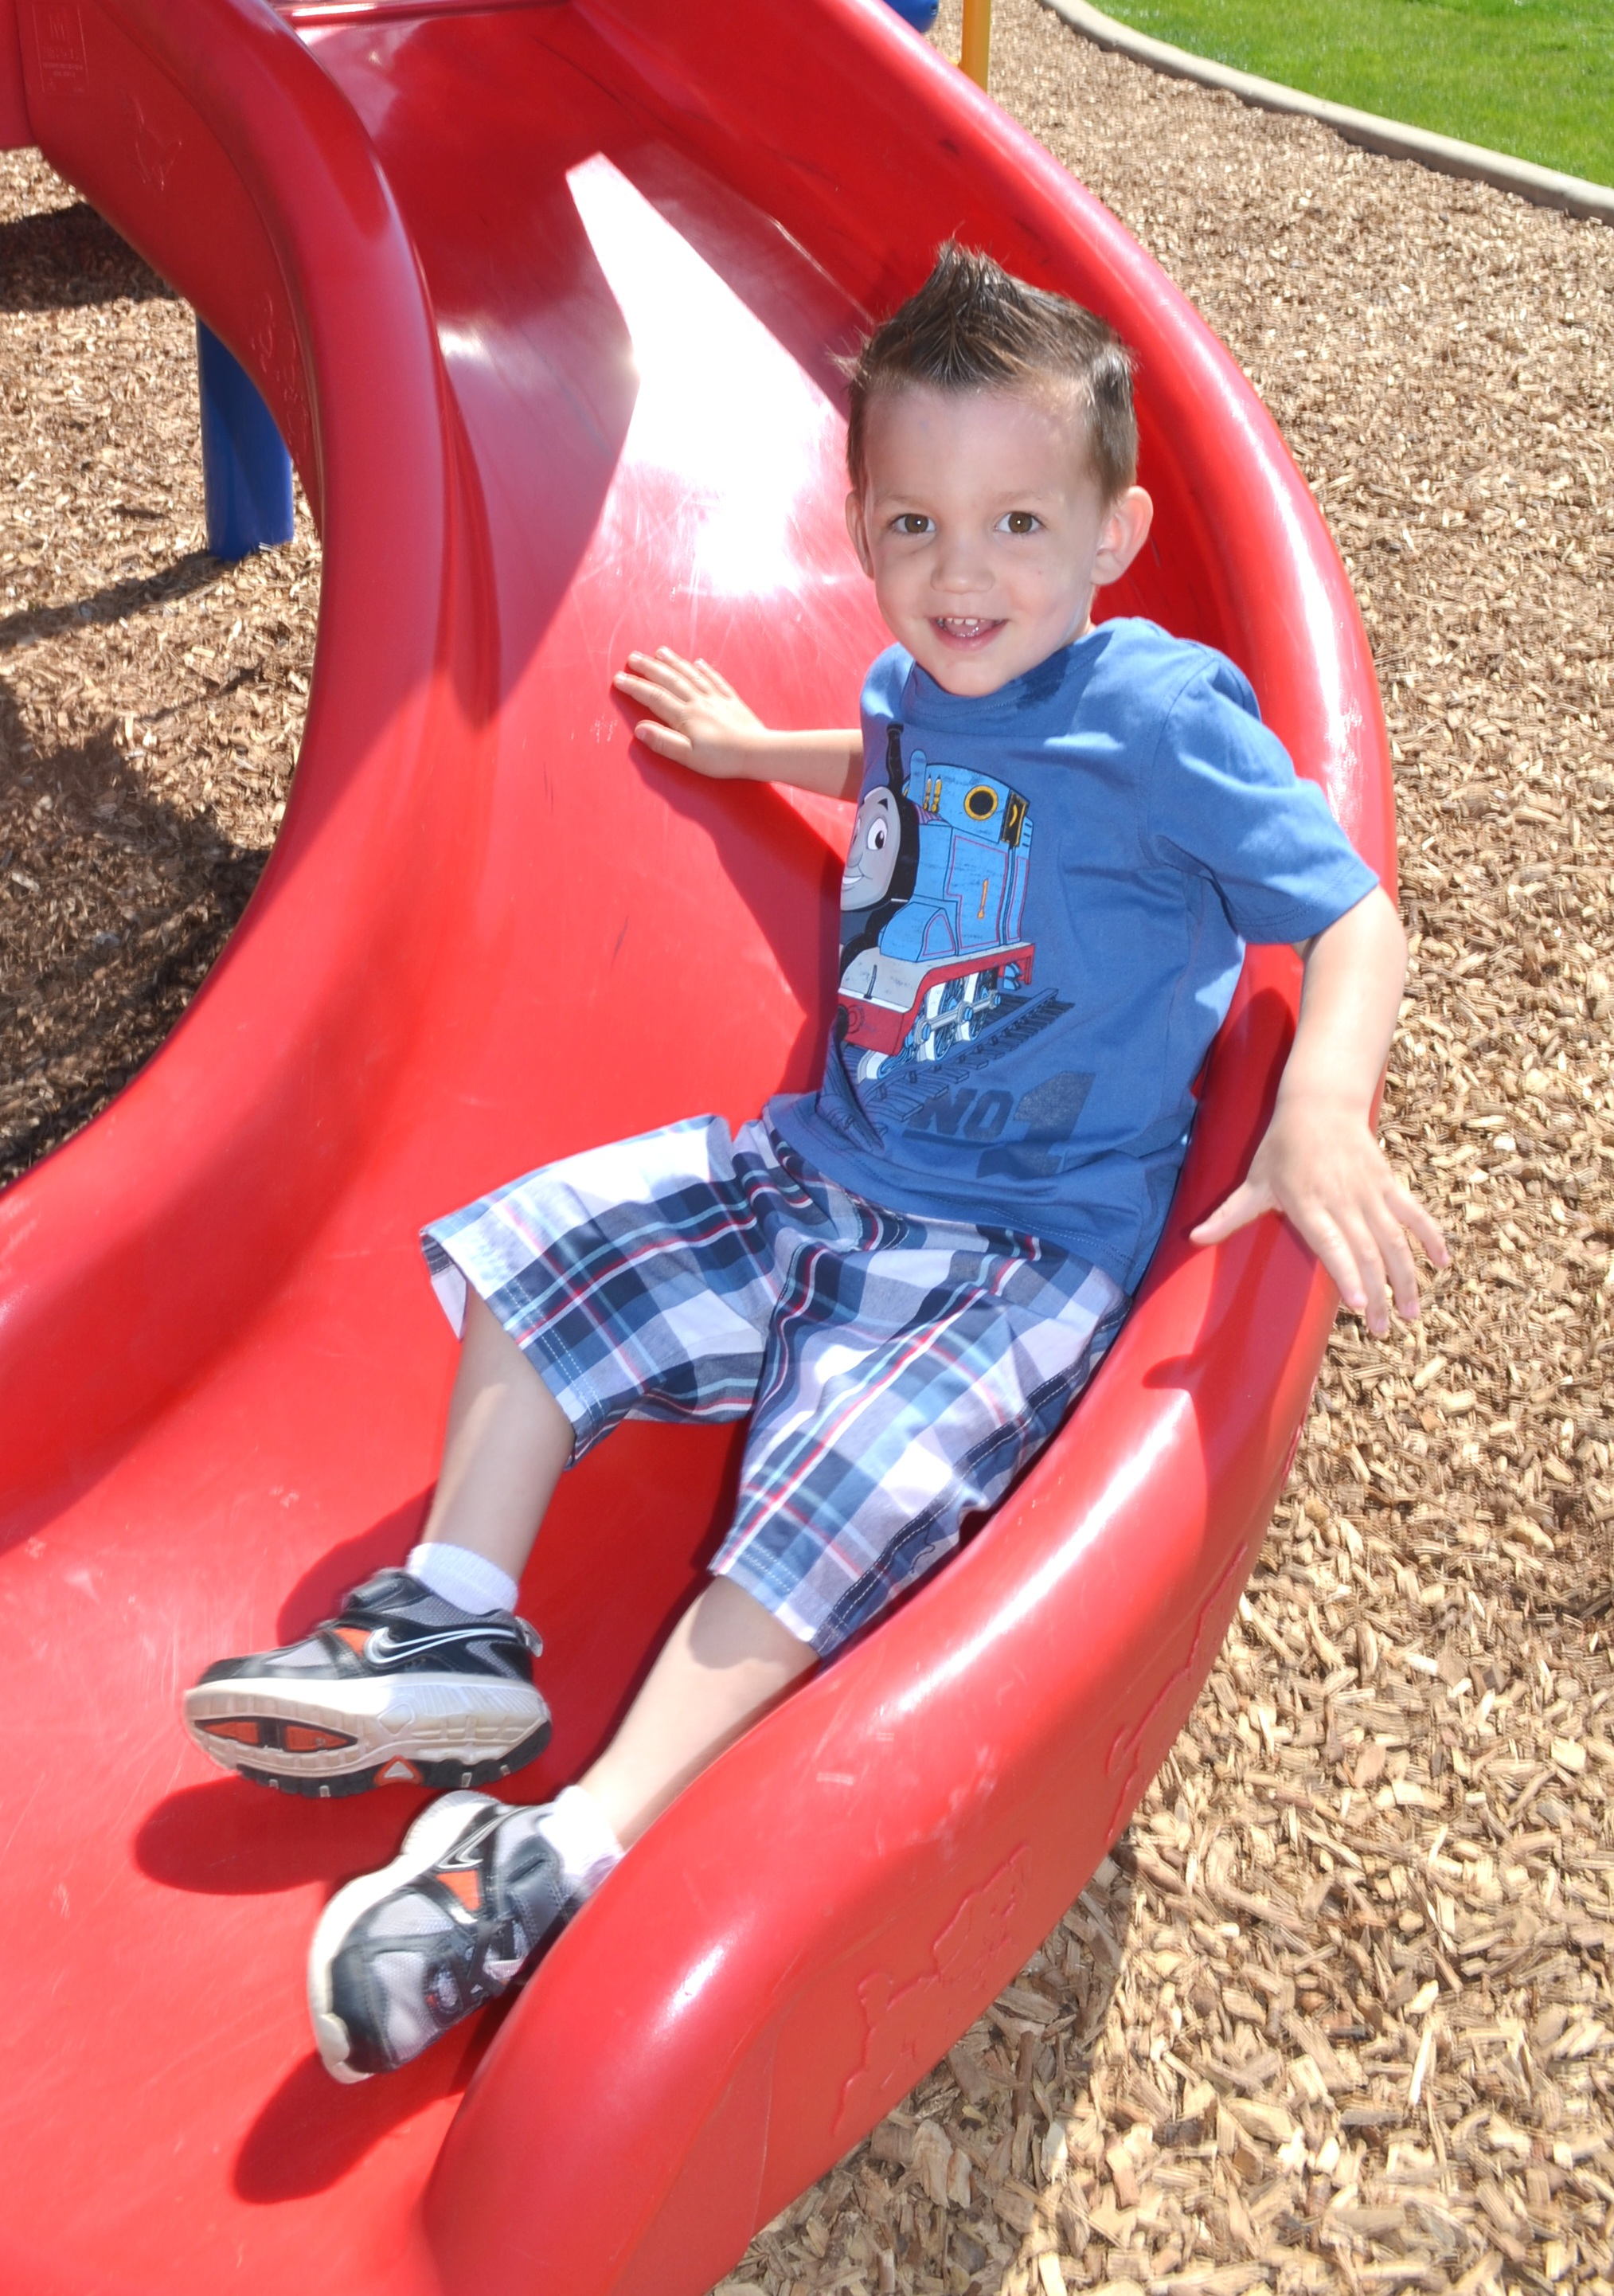 2013 5 8 Boy in Washington Park.jpg